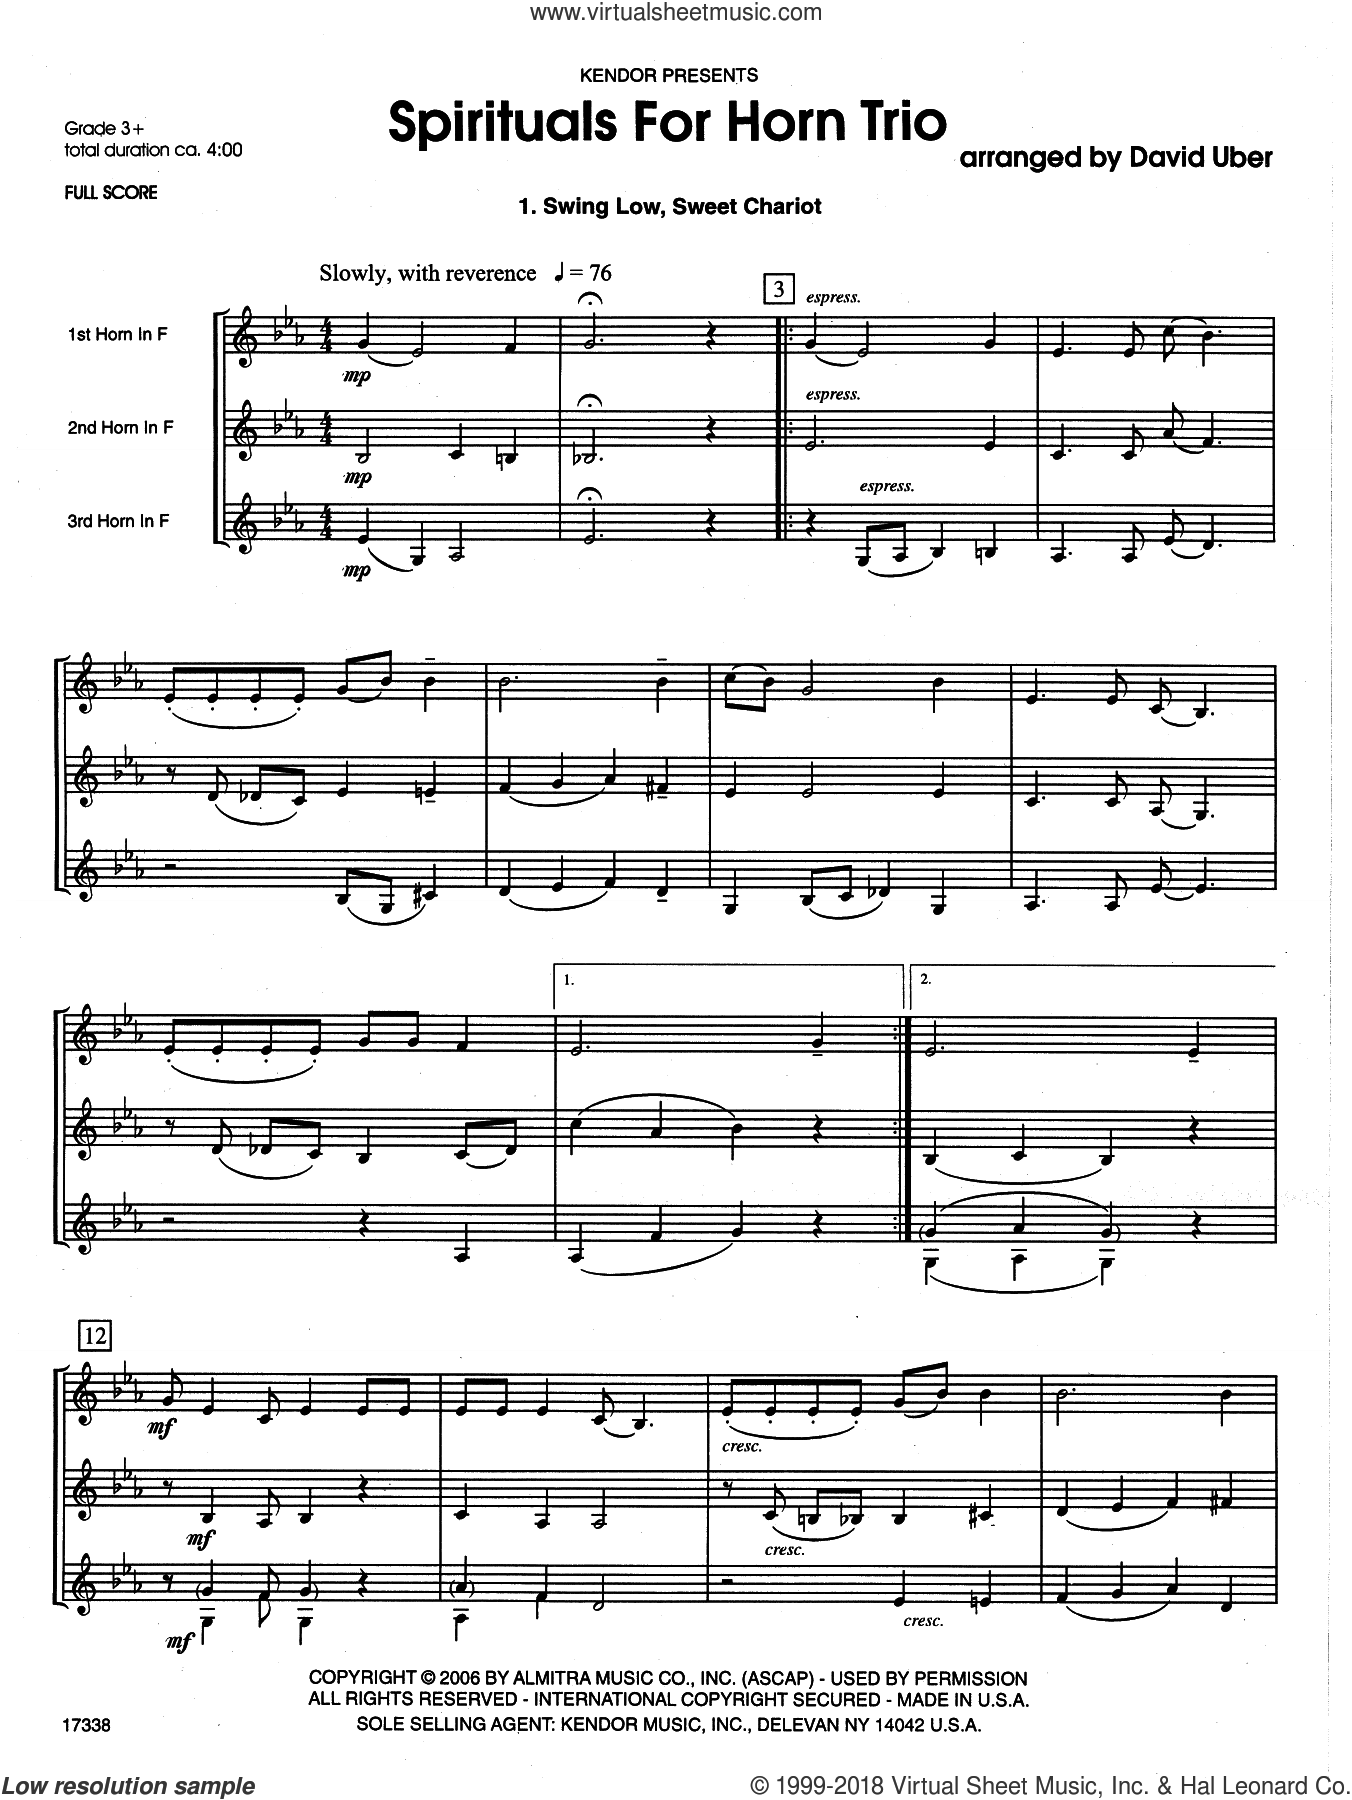 Spirituals For Horn Trio (COMPLETE) sheet music for horn trio by David Uber, intermediate skill level